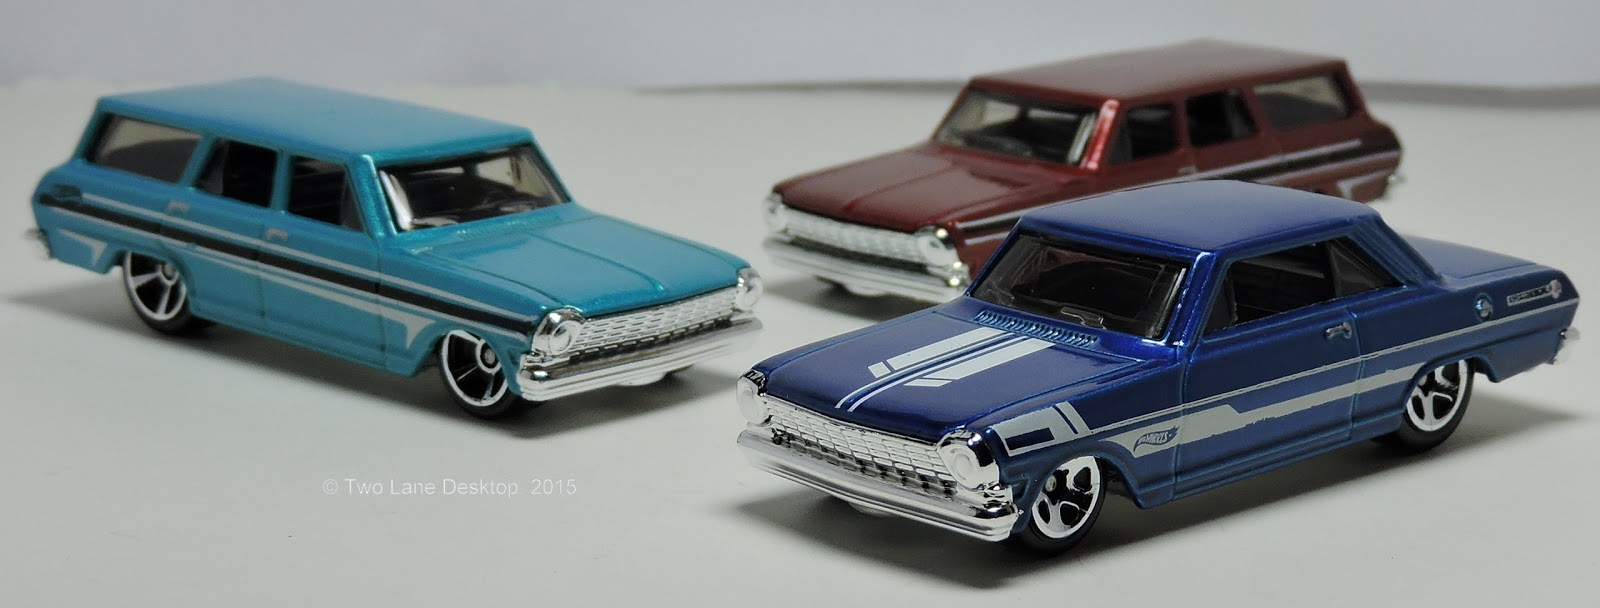 All Chevy 1964 chevy ii : Two Lane Desktop: Hot Wheels 1963 Chevy II and 1964 Chevy Nova Wagon